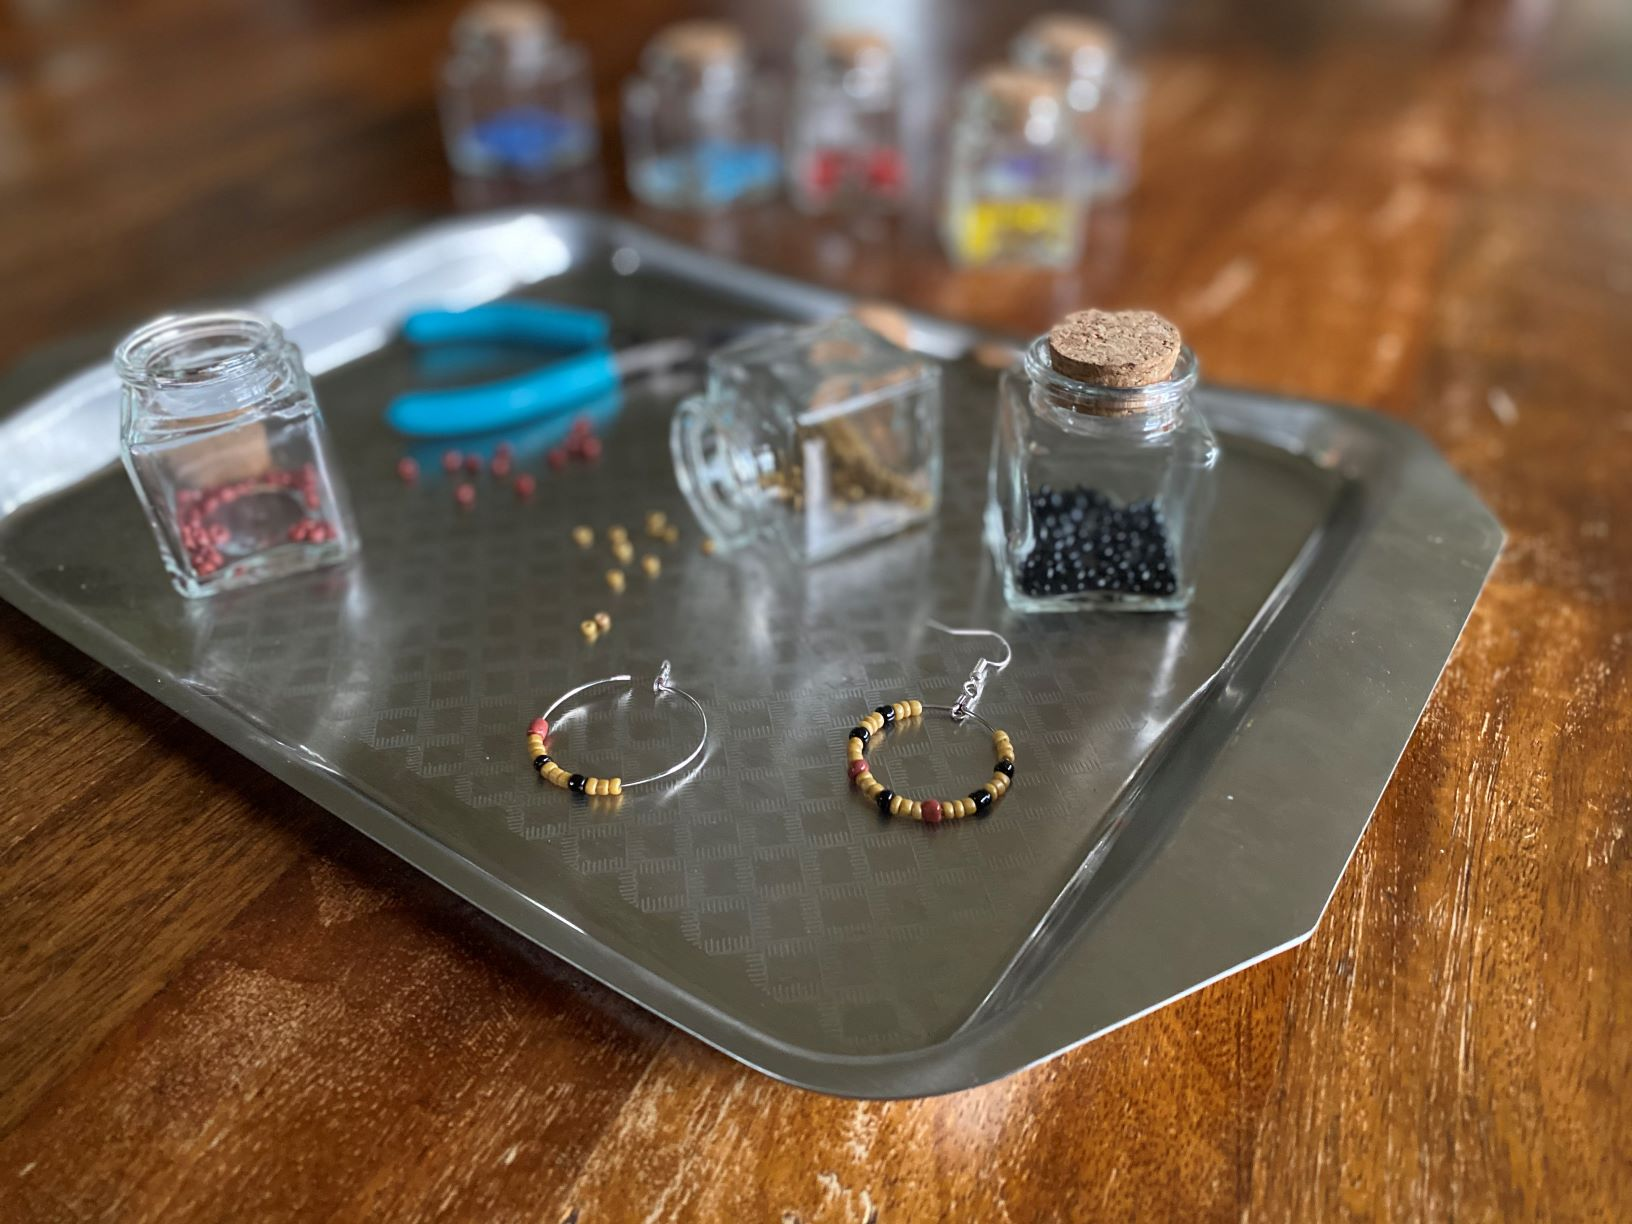 Earring crafts with the better burger tray